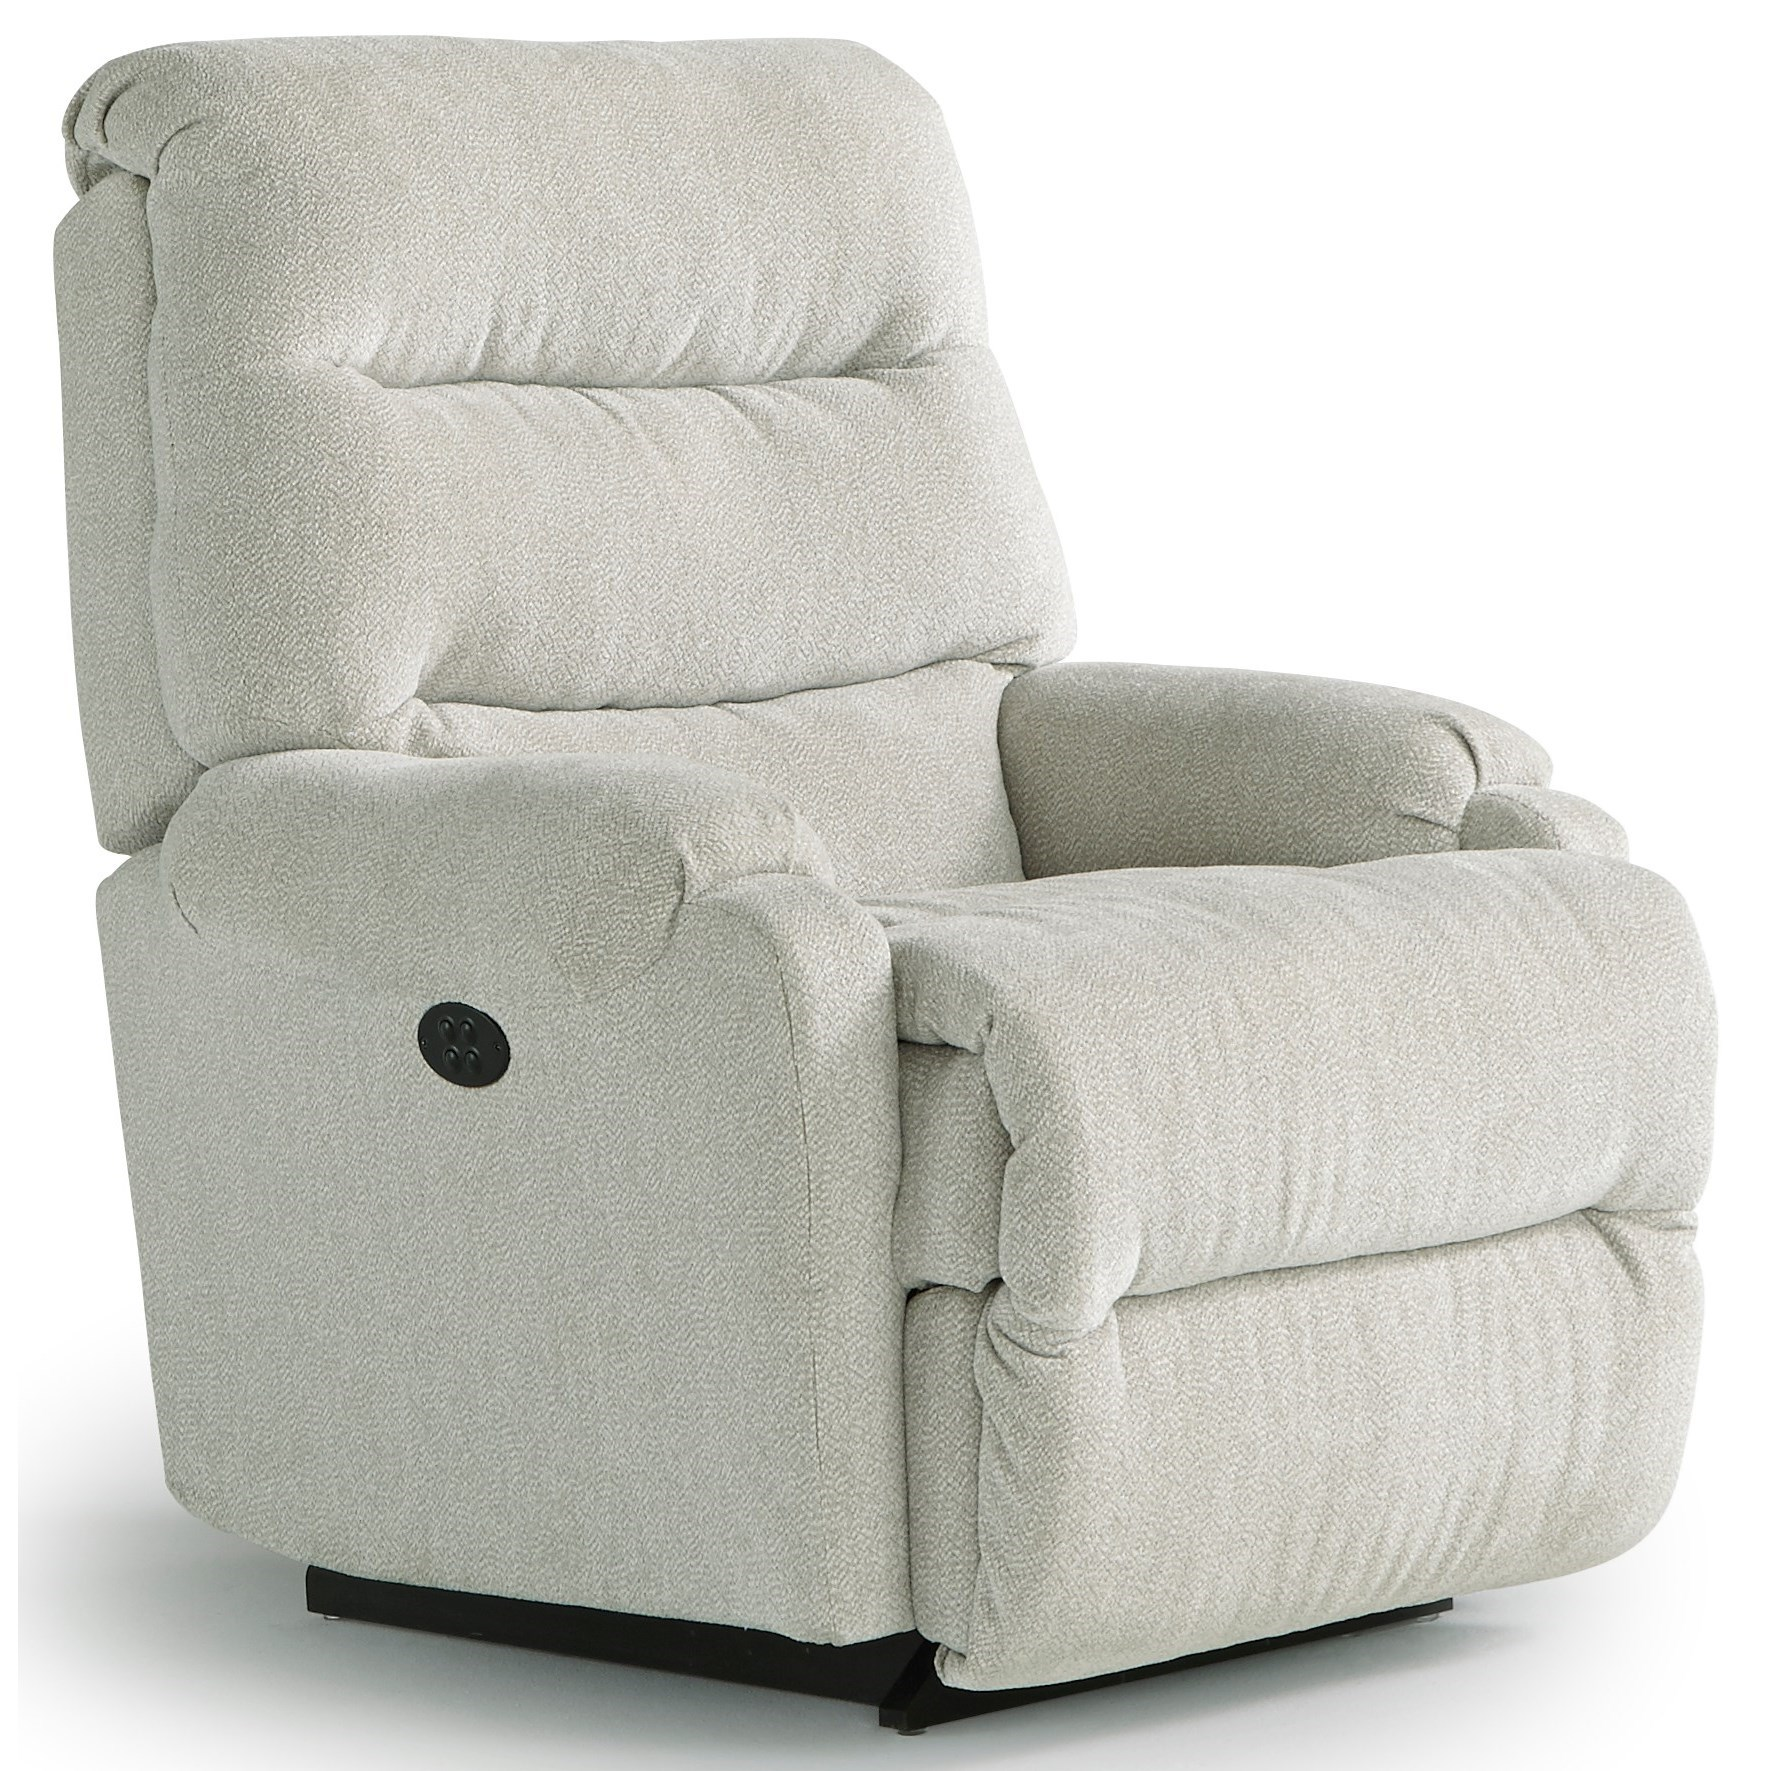 Petite Recliners Sedgefield Pwr Wall Recliner w/ Pwr Headrest by Best Home Furnishings at Baer's Furniture